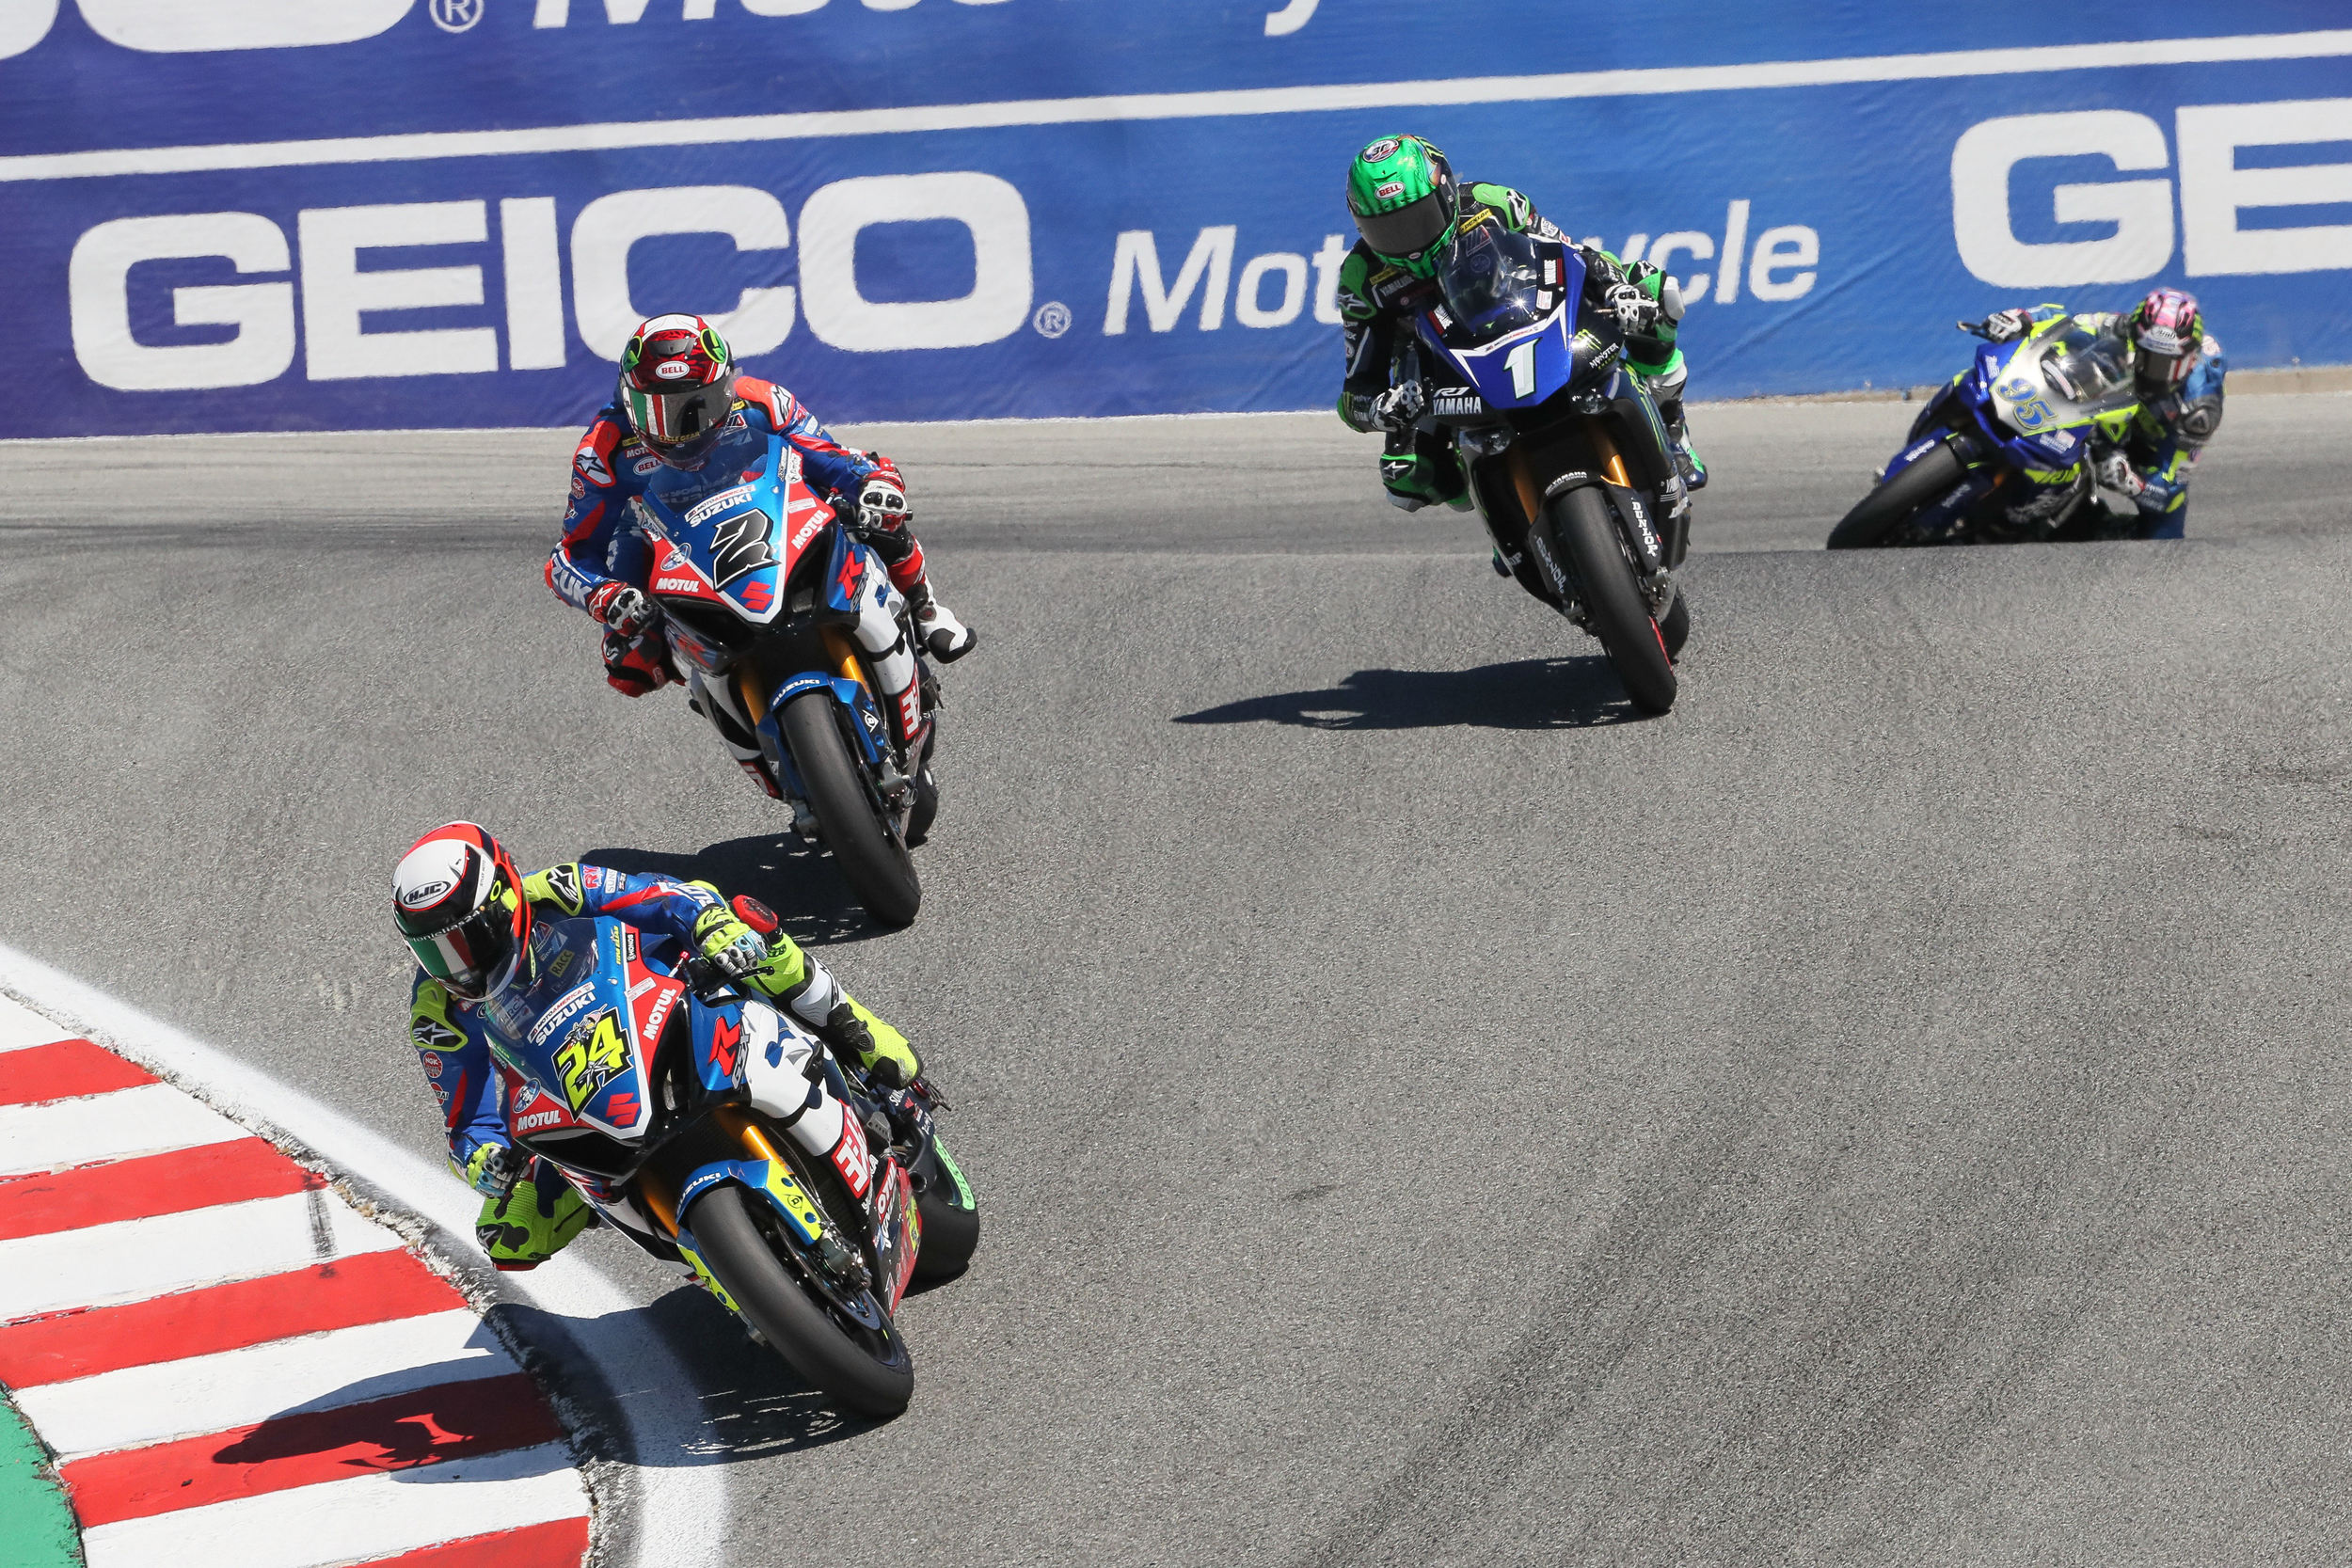 Toni Elias (#24) and Josh Herrin (#2) lead the pack down the infamous Laguna Seca Corkscrew